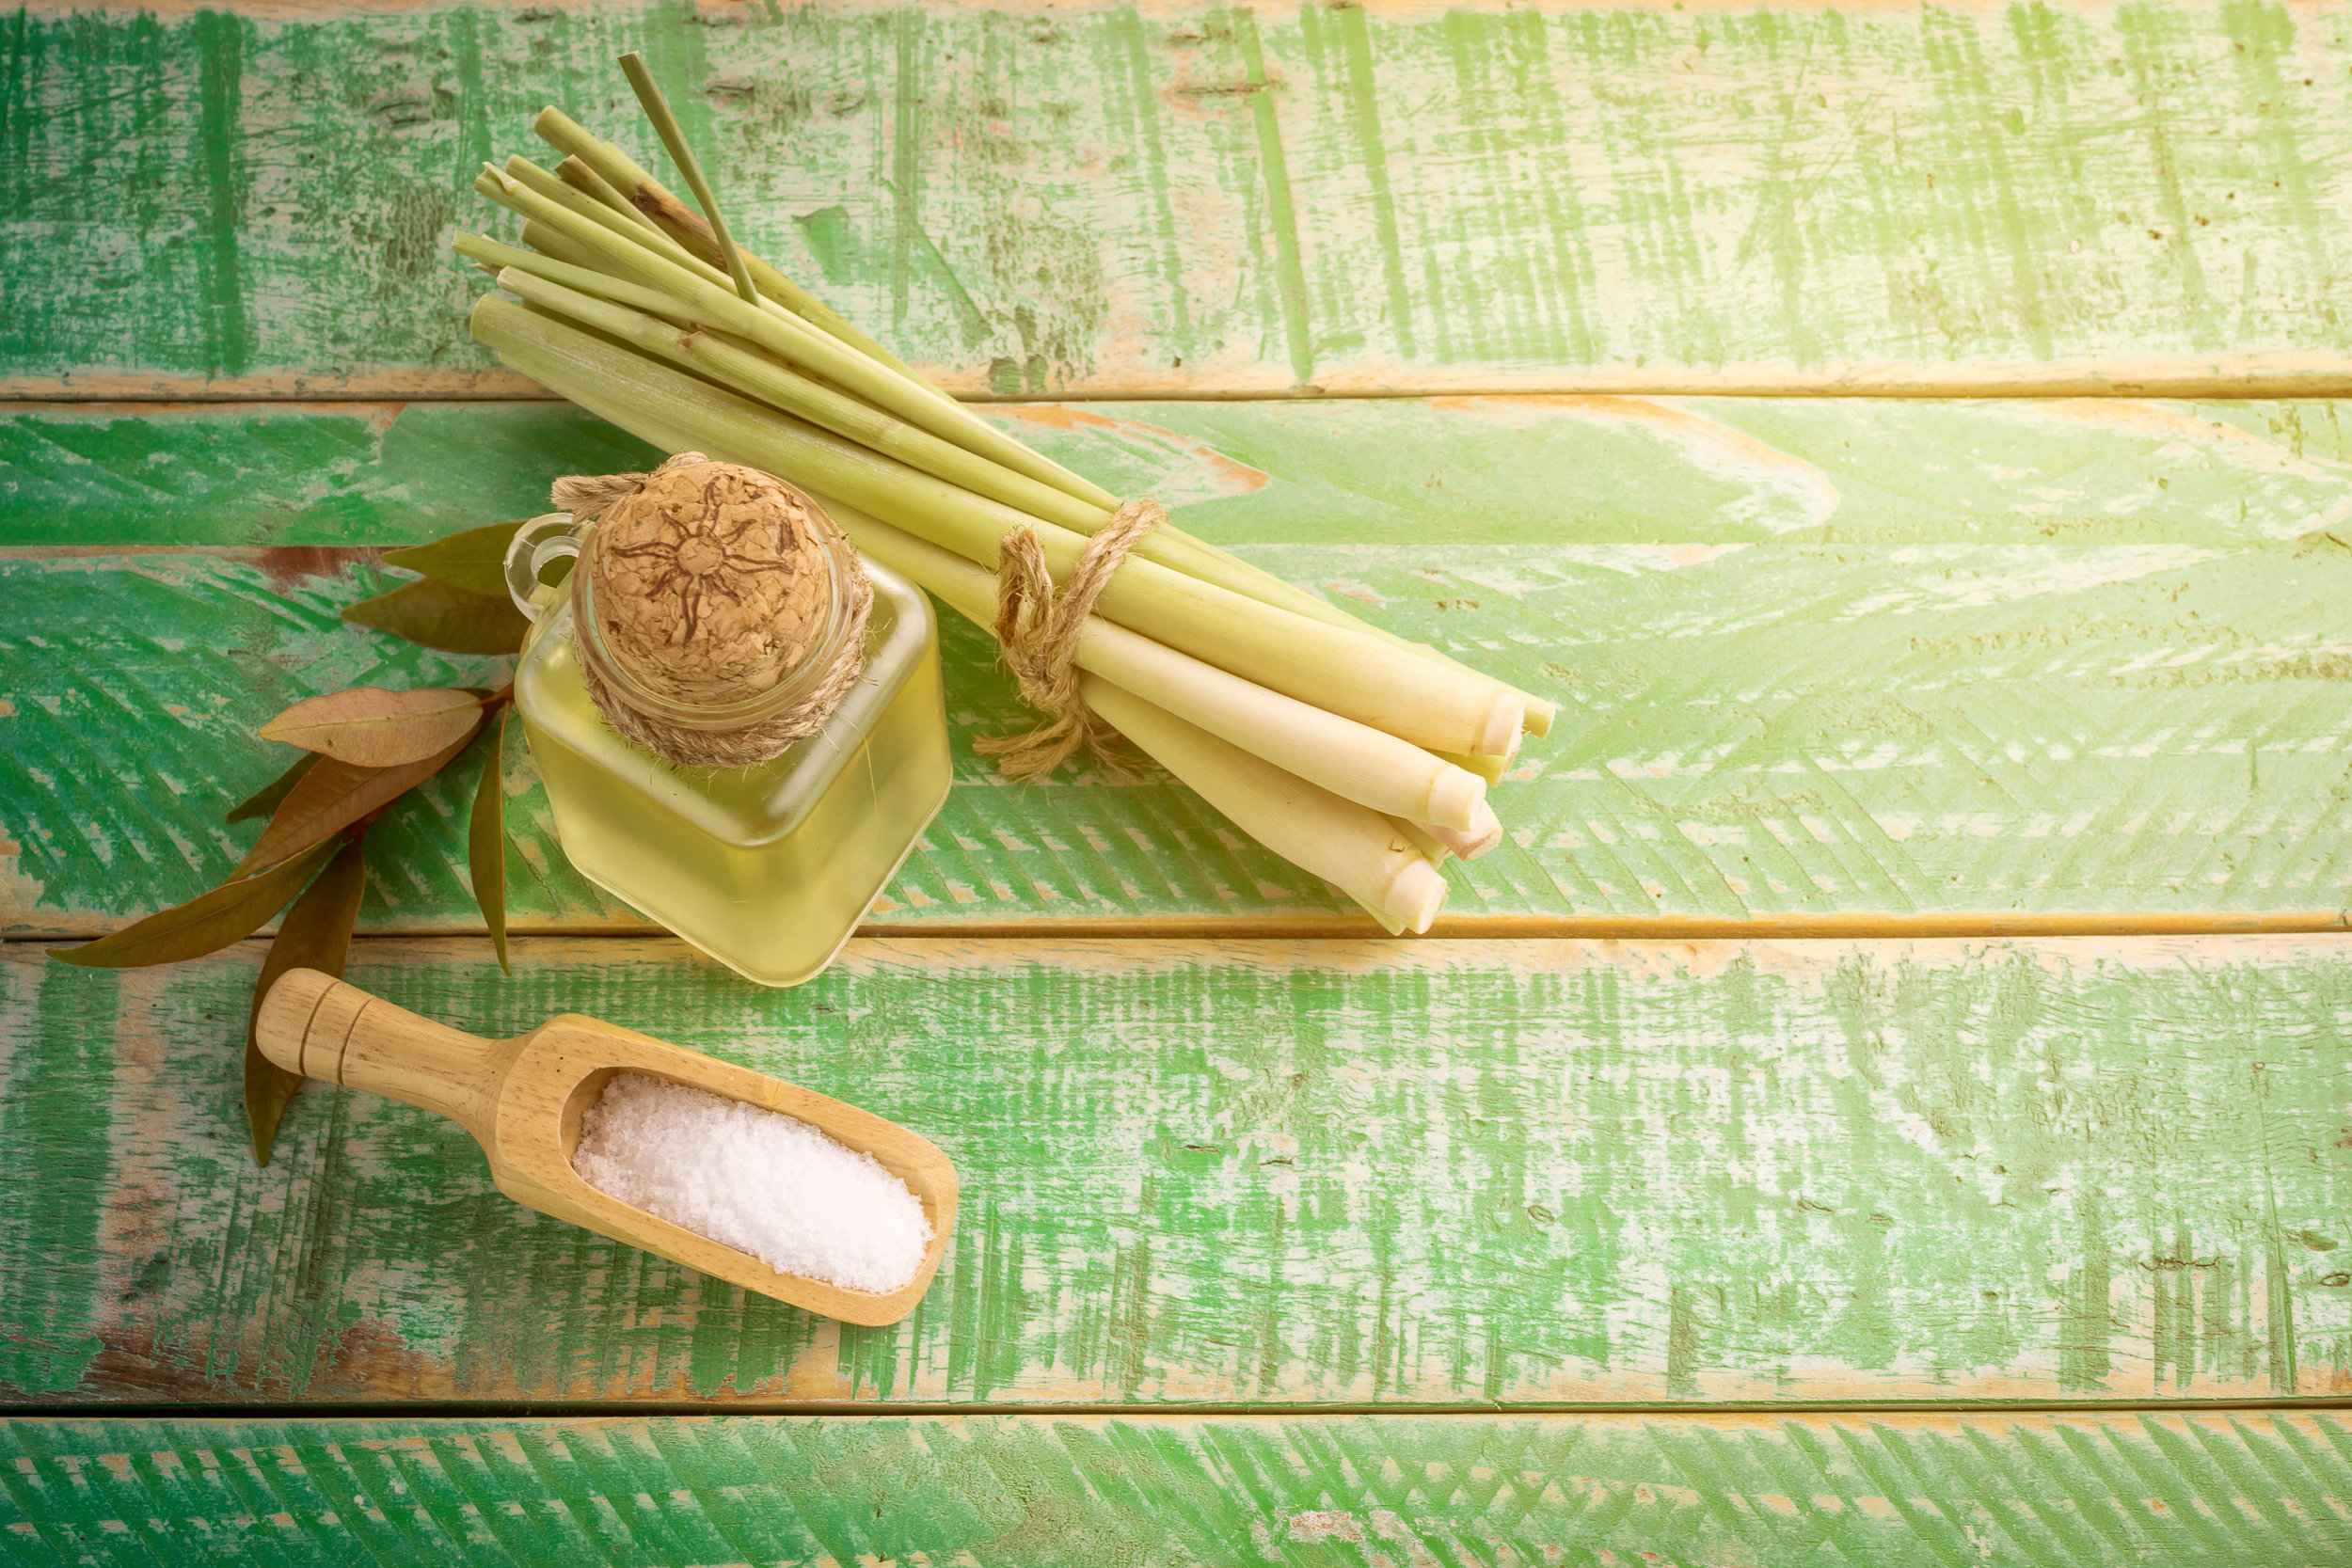 Lemon Grass Oil - Lemongrass acts like a toner, minimizing pores of the skin and toning the tissues and muscles. One huge Lemongrass Essential Oil benefit is its skin healing properties. Lemongrass Oil is an effective cleanser for all skin types; its antiseptic and astringent properties make Lemongrass Oil perfect for getting even and glowing skin.